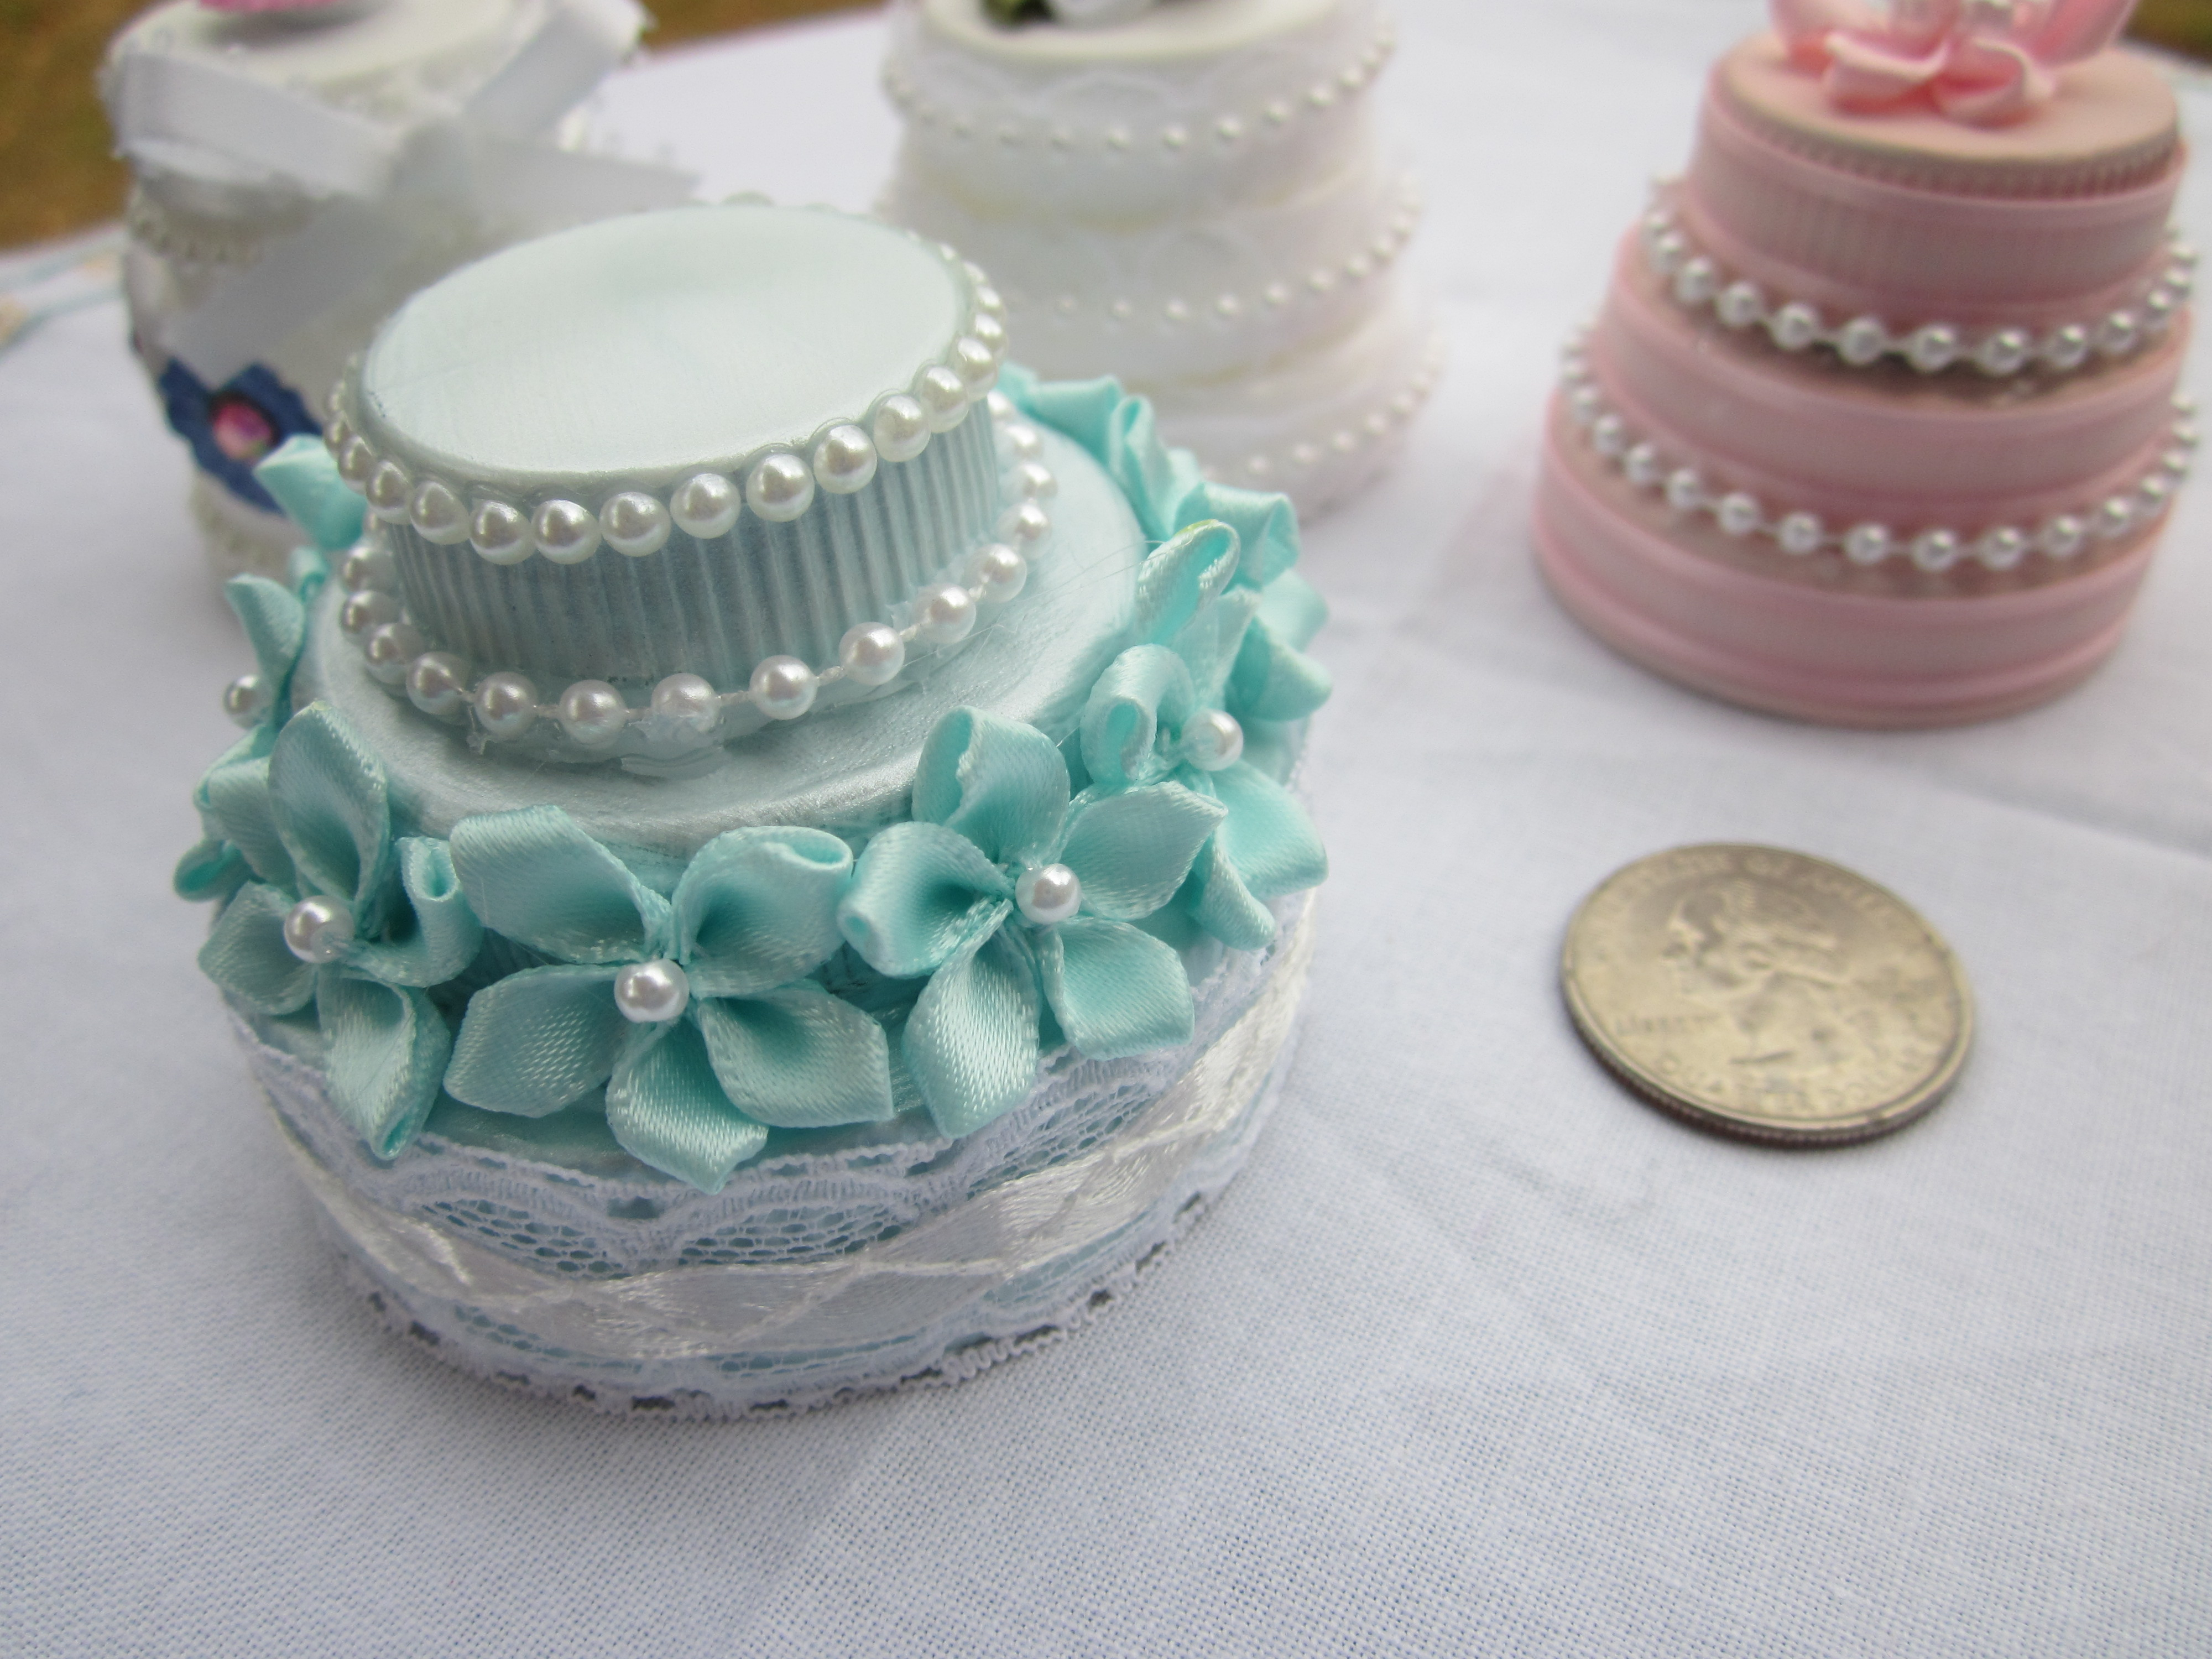 Decorate Cake With Toothpaste